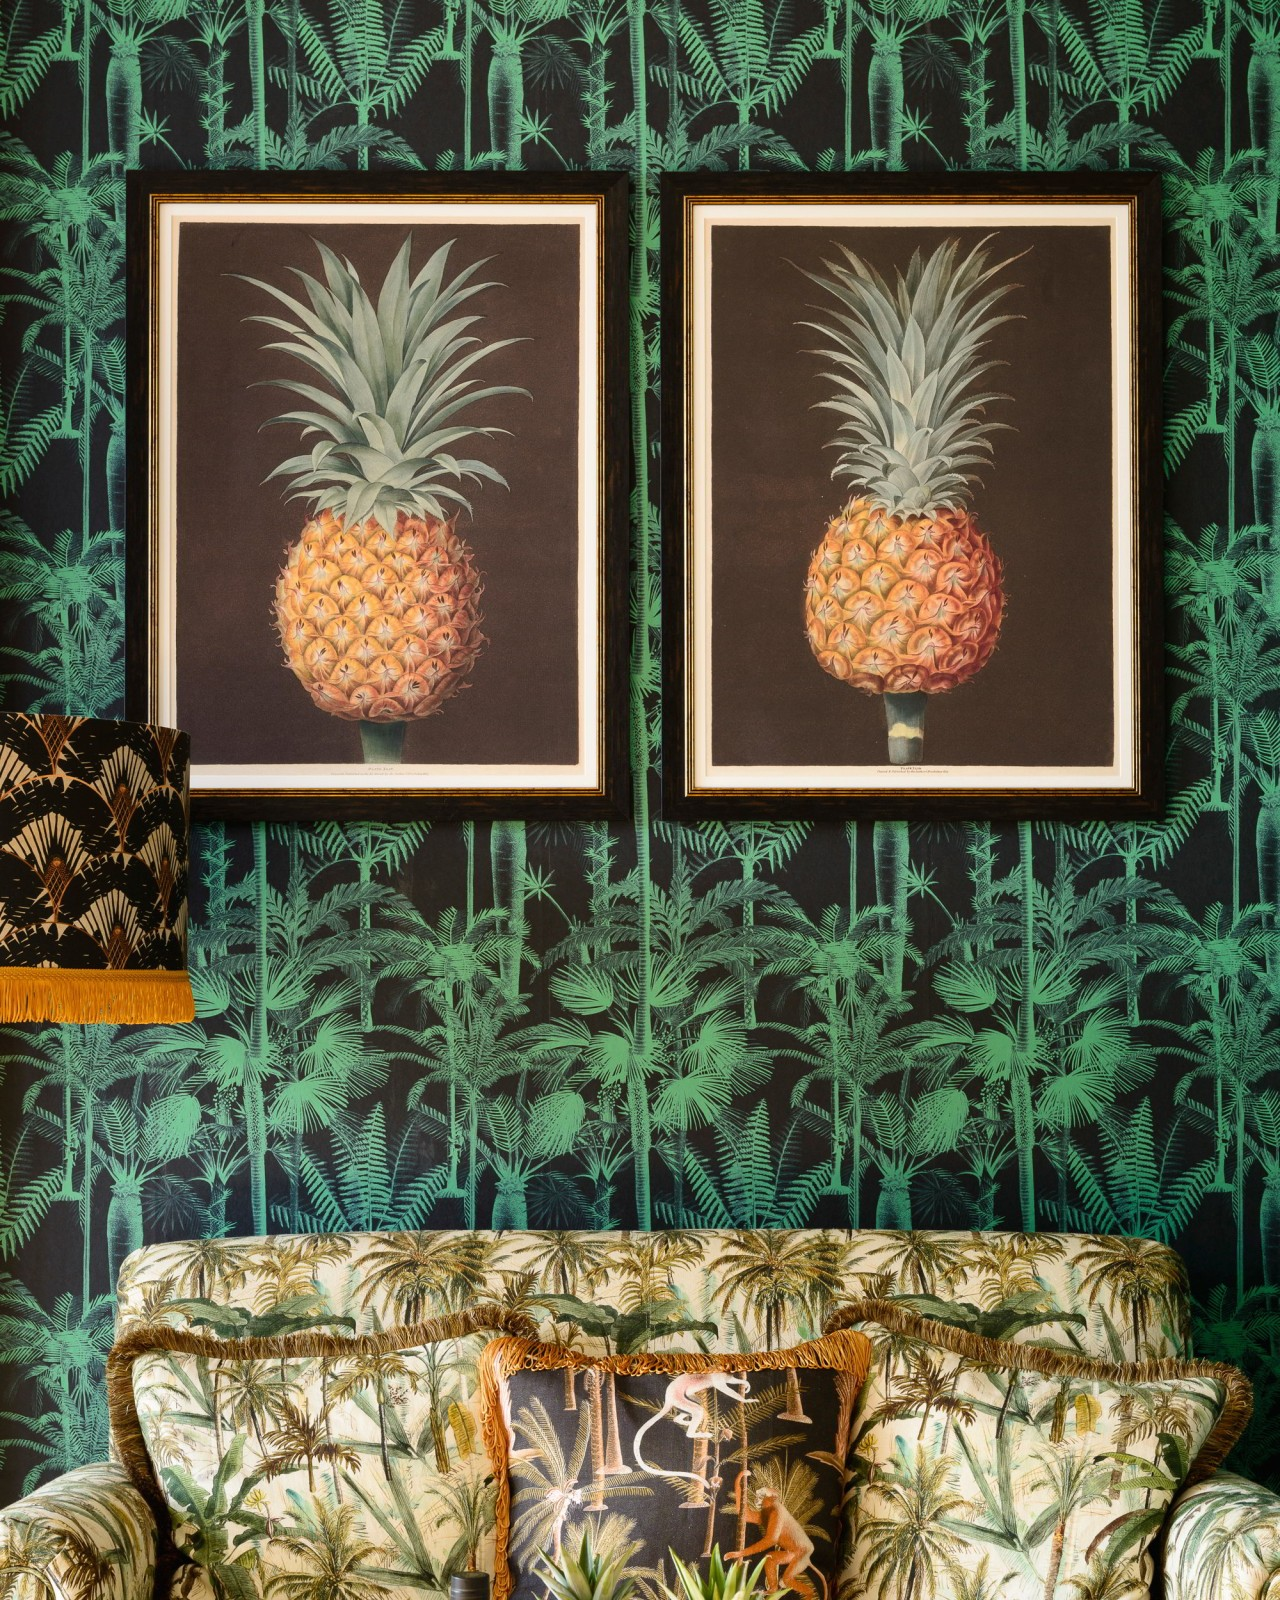 PINEAPPLES OF ANTIGUA - THE ANTIGUA PINE BY BROOKSHAW Framed Art